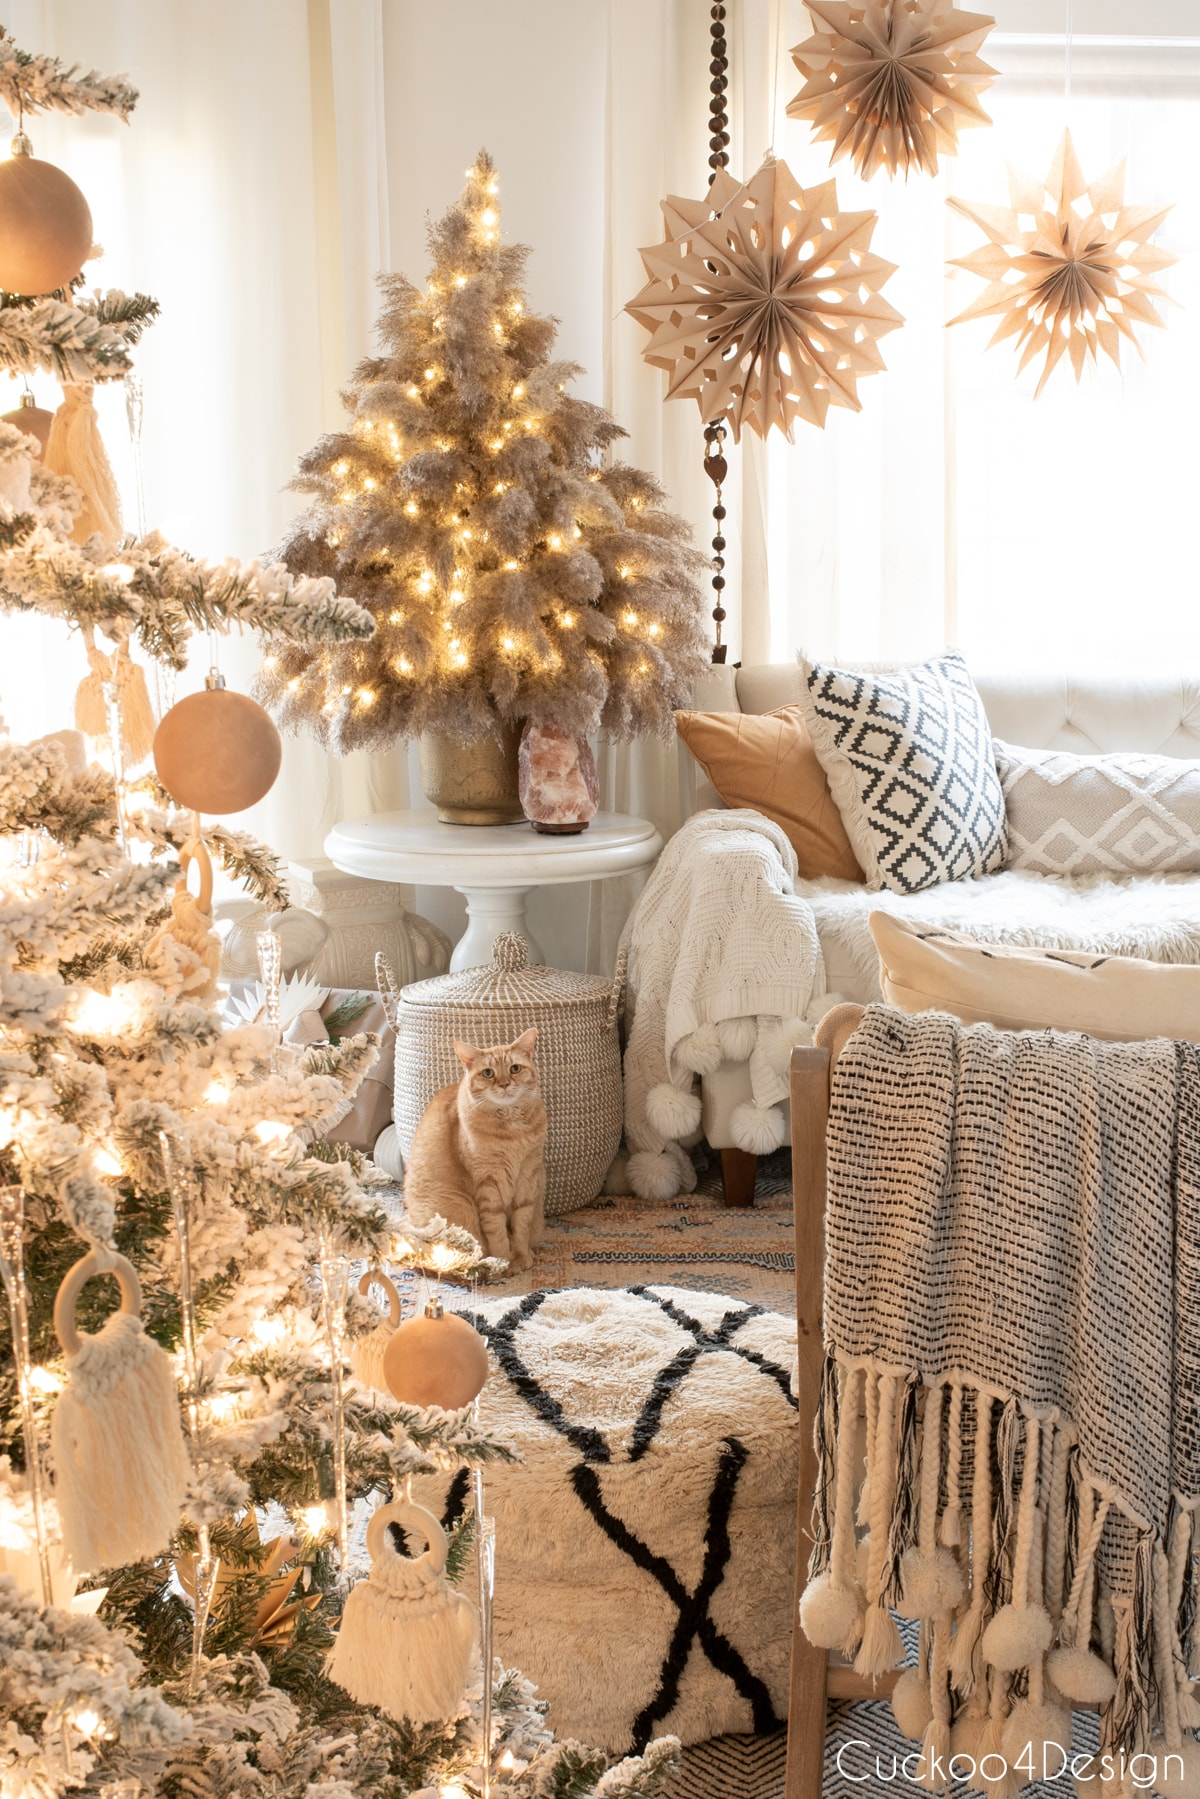 pampas grass Christmas tree in matching neutral living room with orange tabby